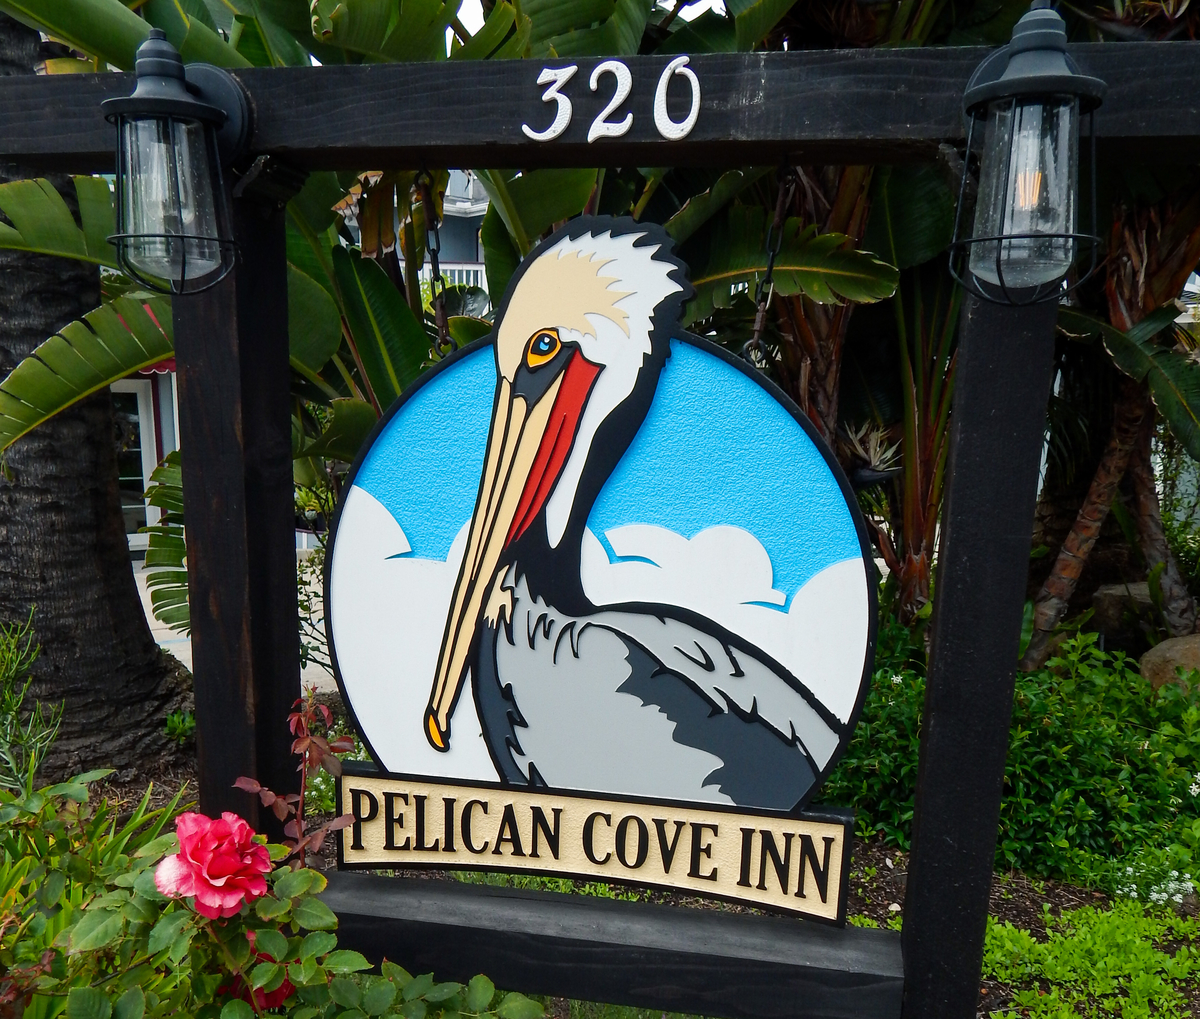 Pelican Cove Inn in Carlsbad